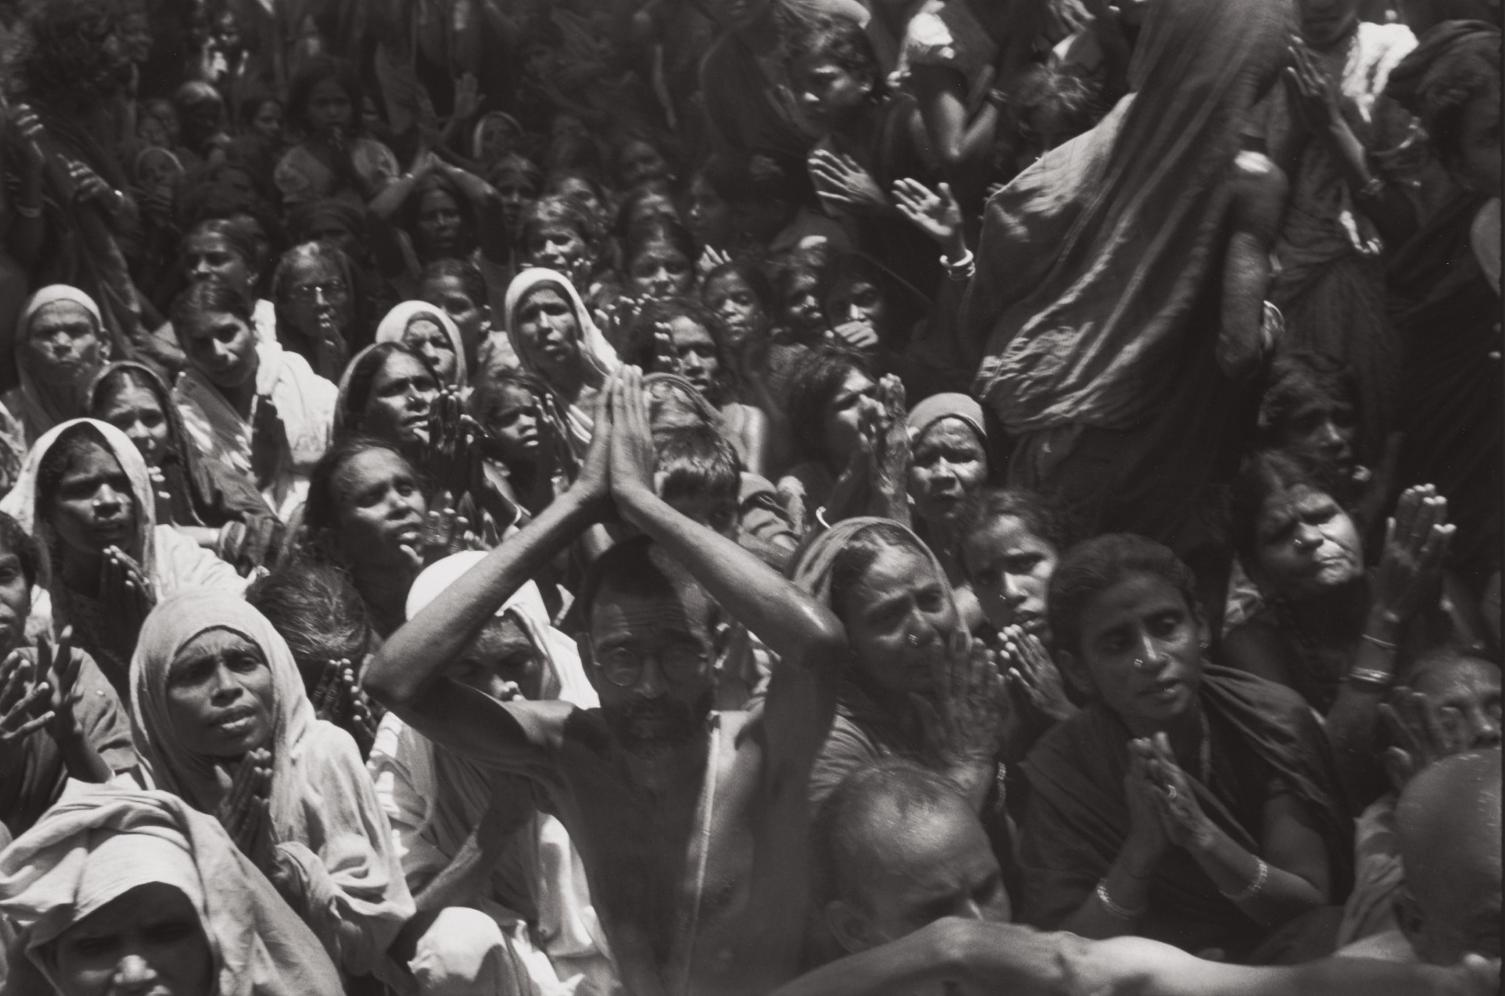 Henri Cartier-Bresson-Funeral Of The Bhagwan Sri Ramana Maharshi, Tiruvannamalai, India-1950